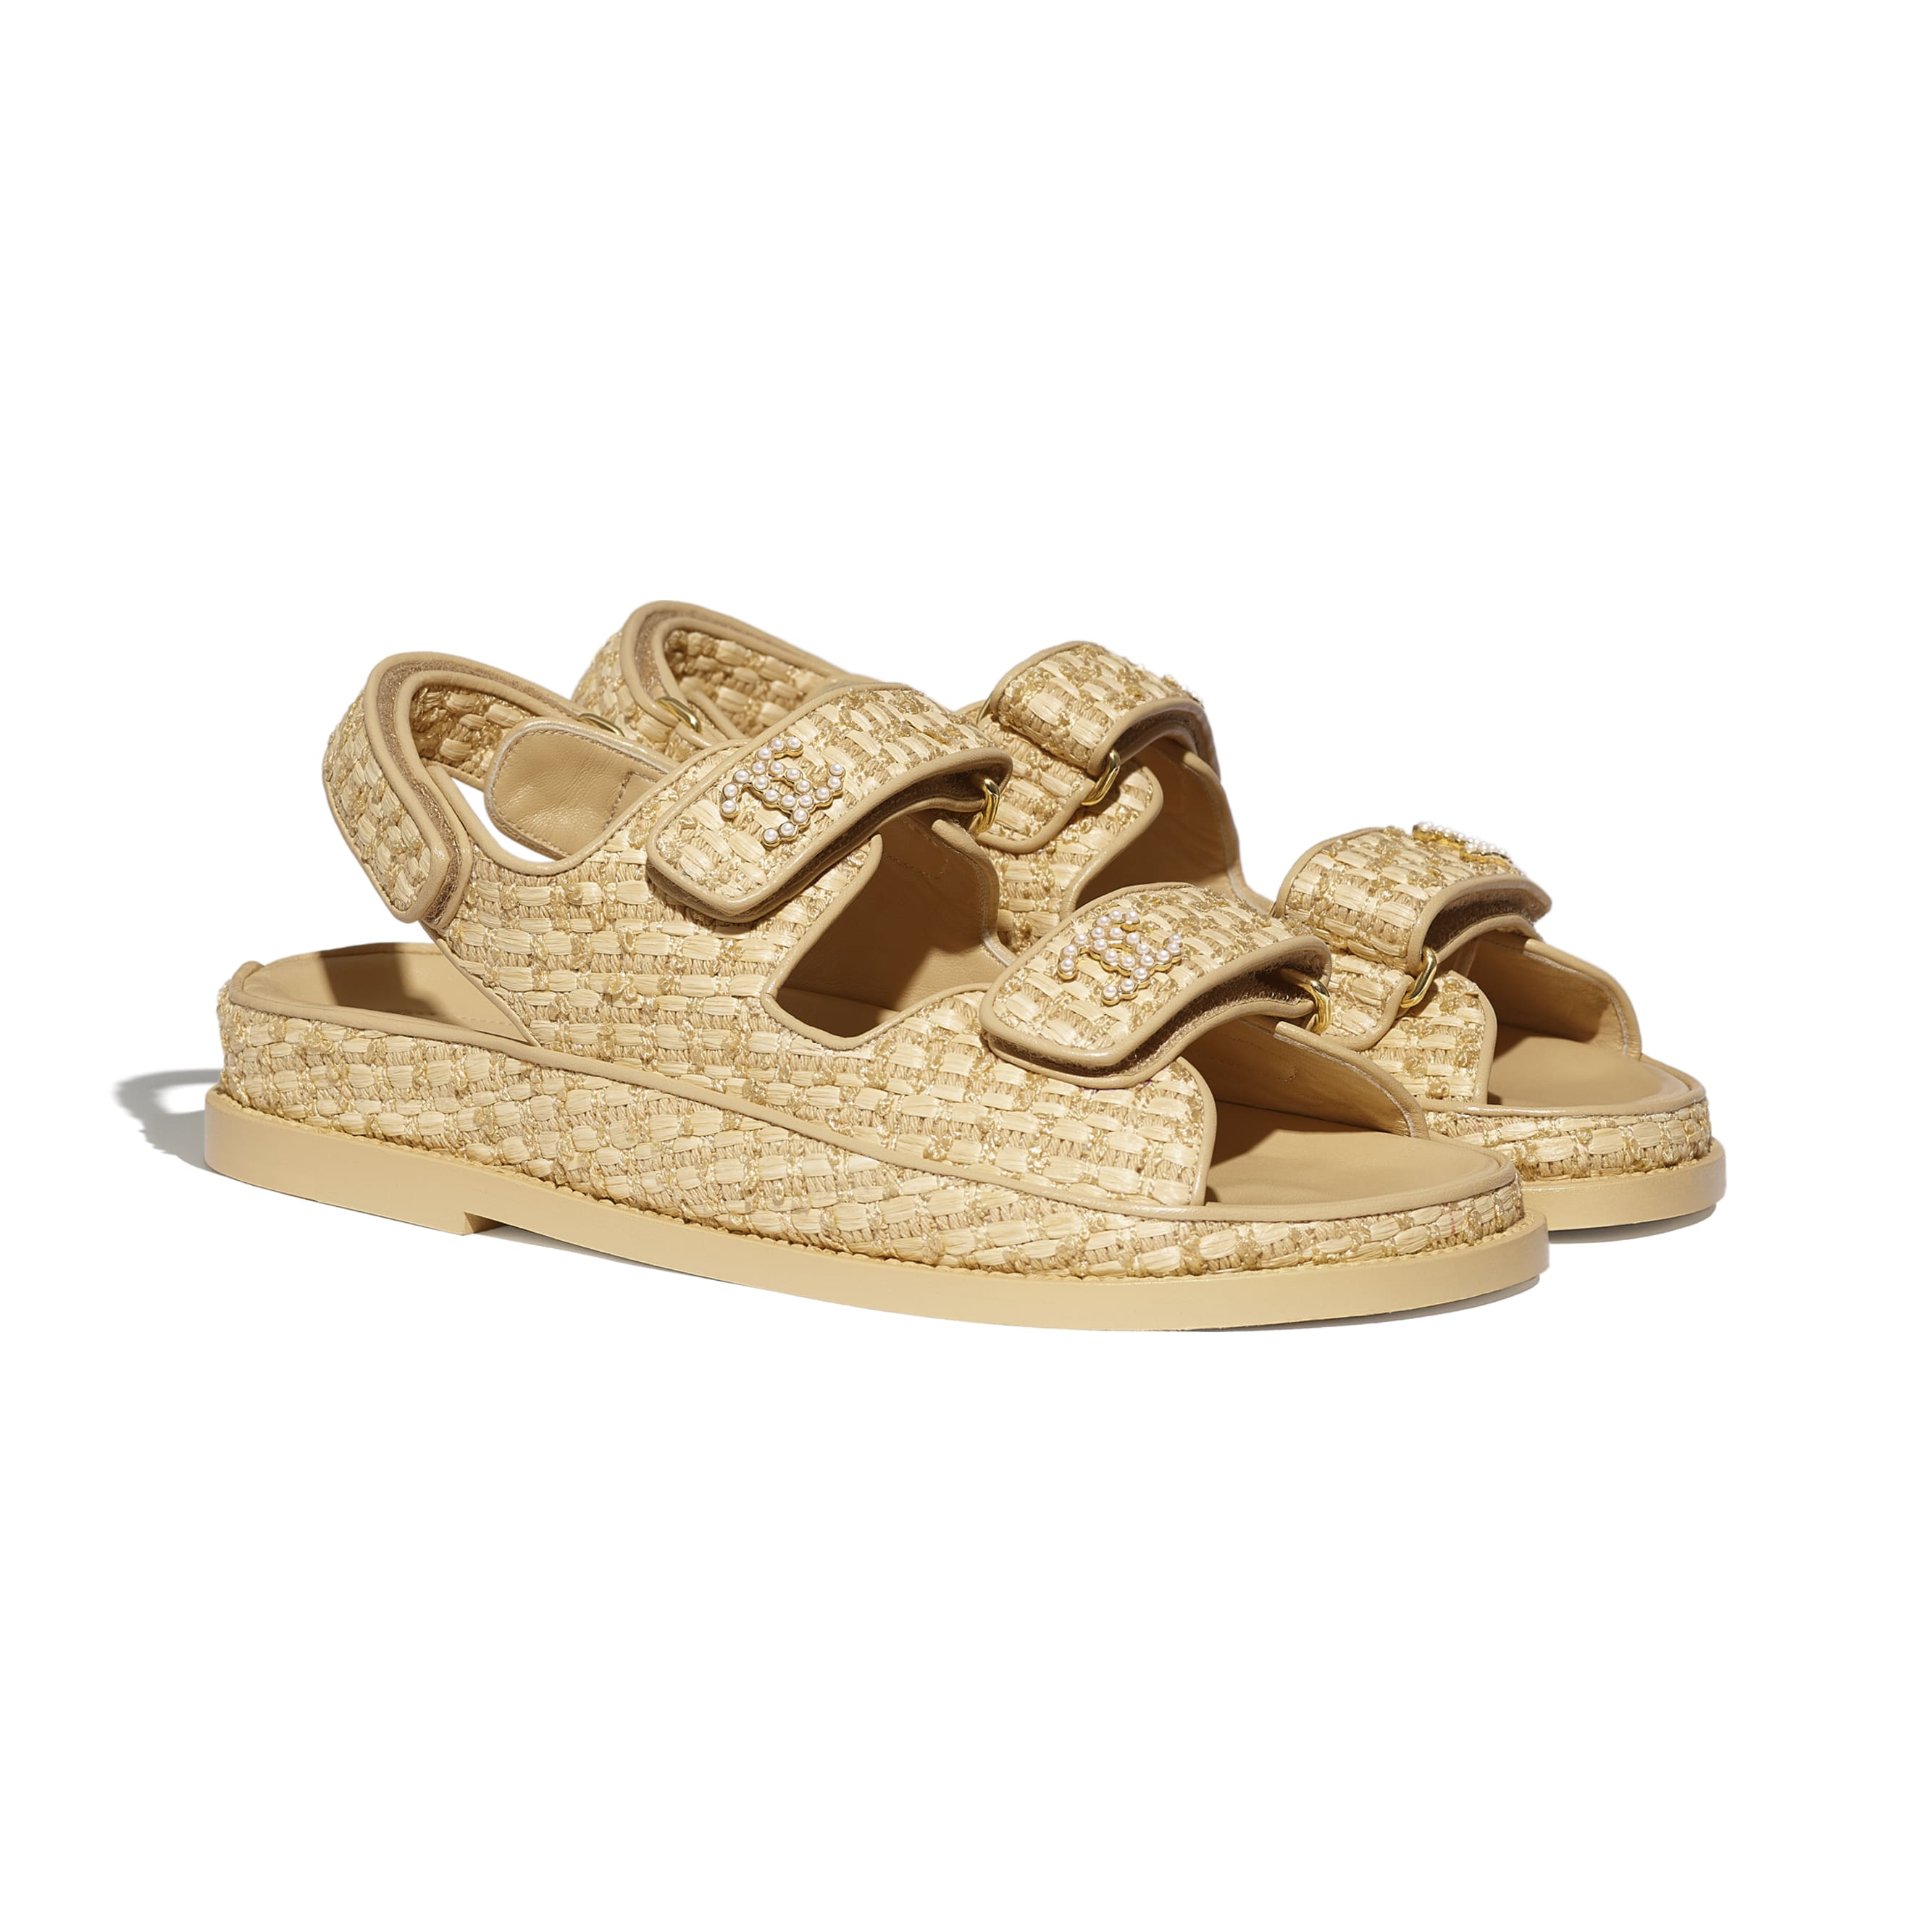 Sandals - Beige - Braided Fabric - CHANEL - Alternative view - see standard sized version